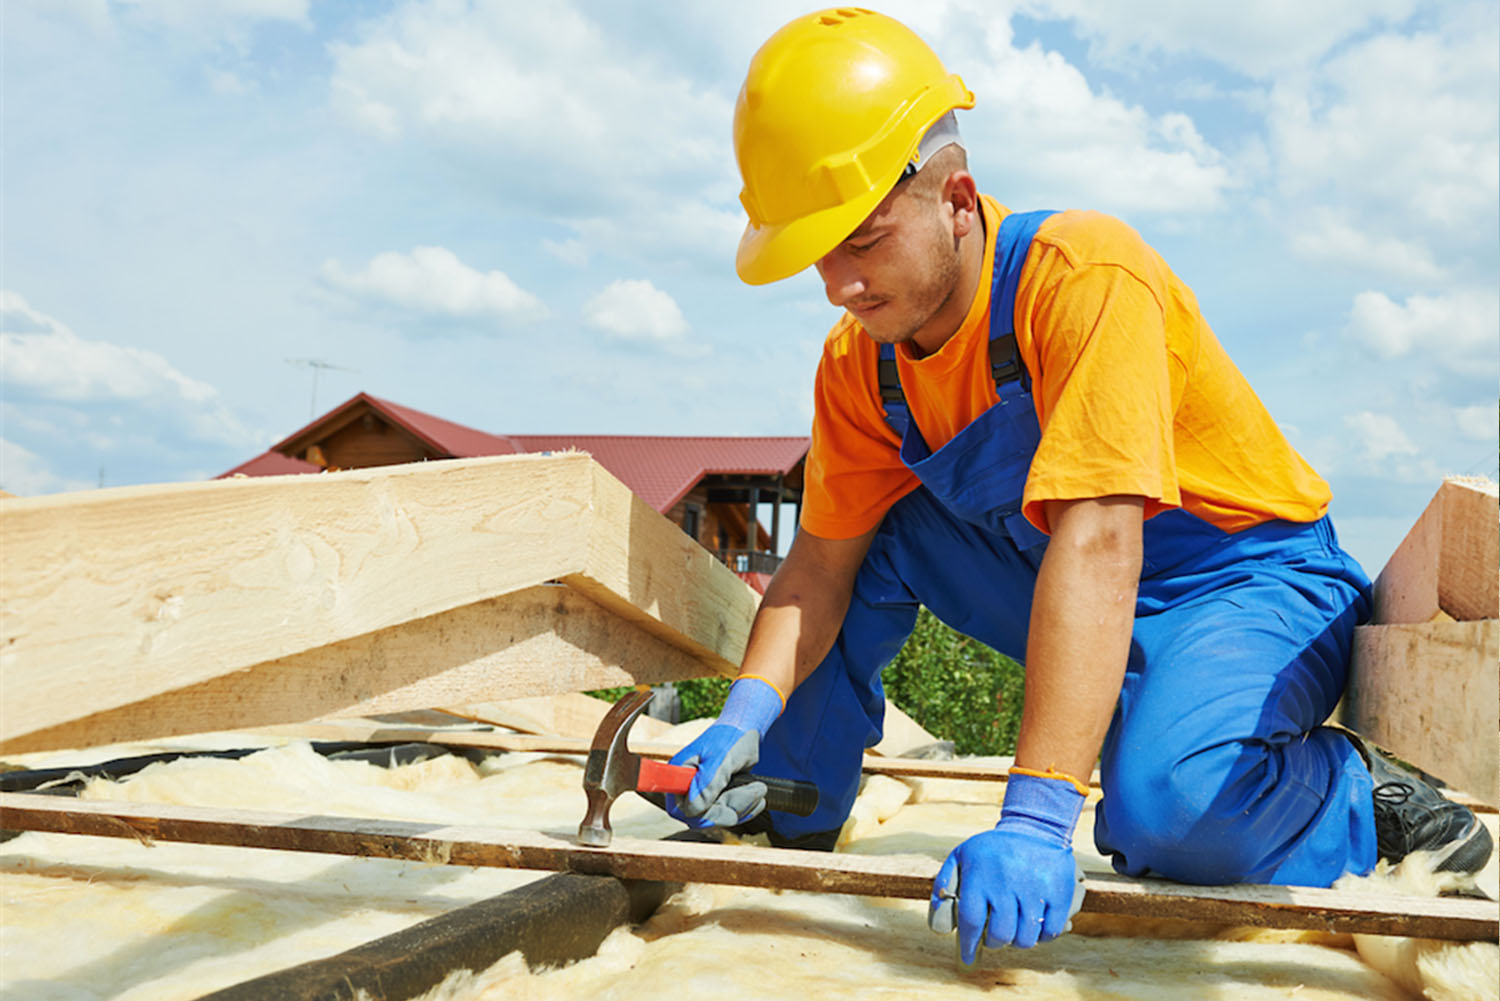 Commercial Roofing Contractors Near Me Mcdonough, GA 30252